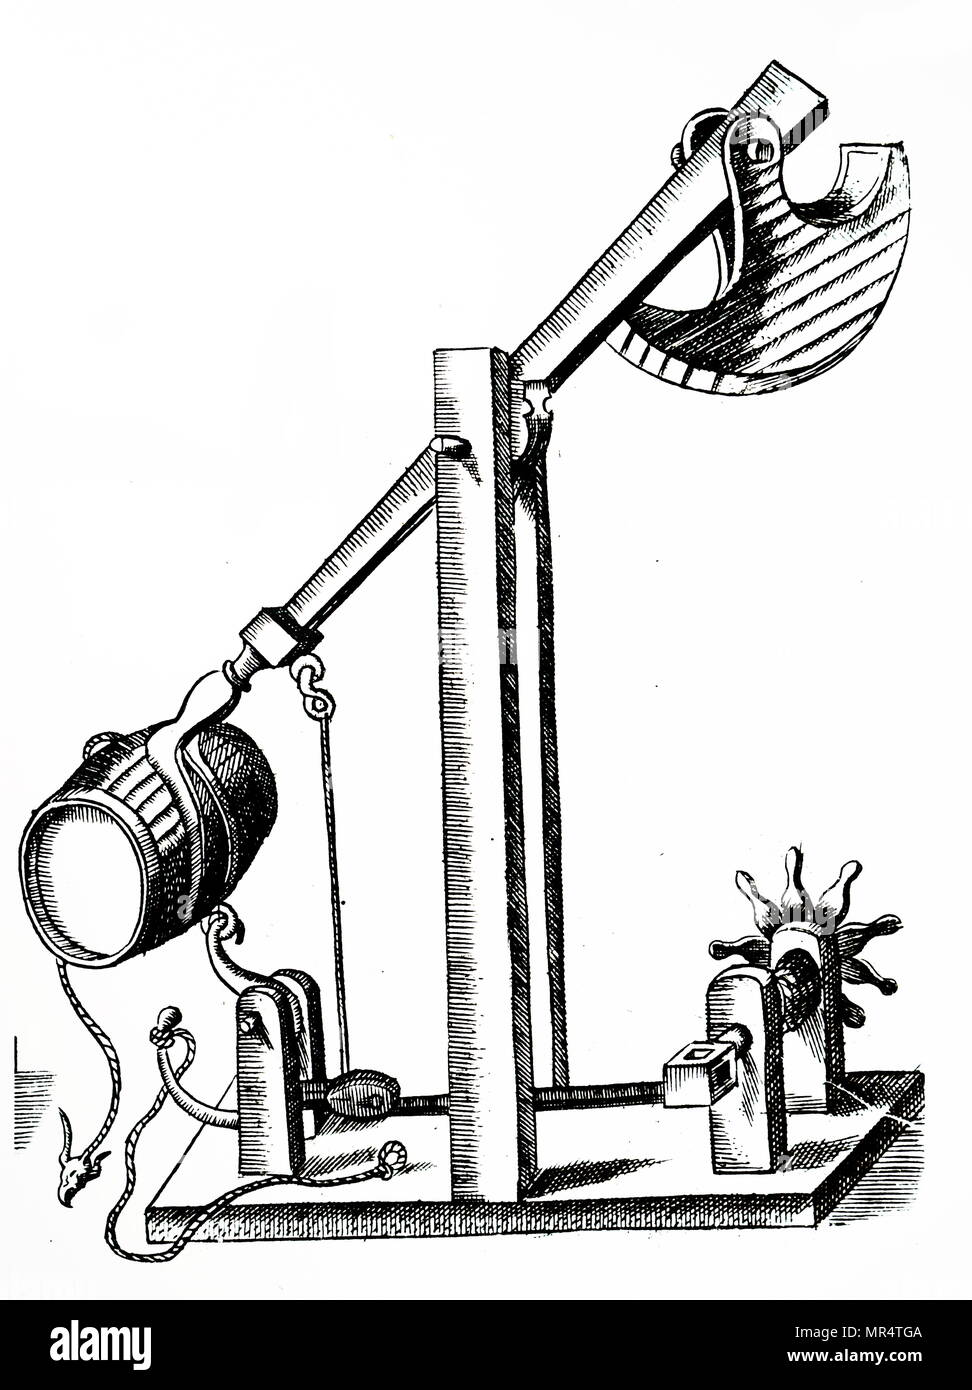 Ballista Stock Photos Images Alamy Catapult Diagram Related Keywords Suggestions Engraving Depicting A Mechanical Wound Up By Winch Right When The